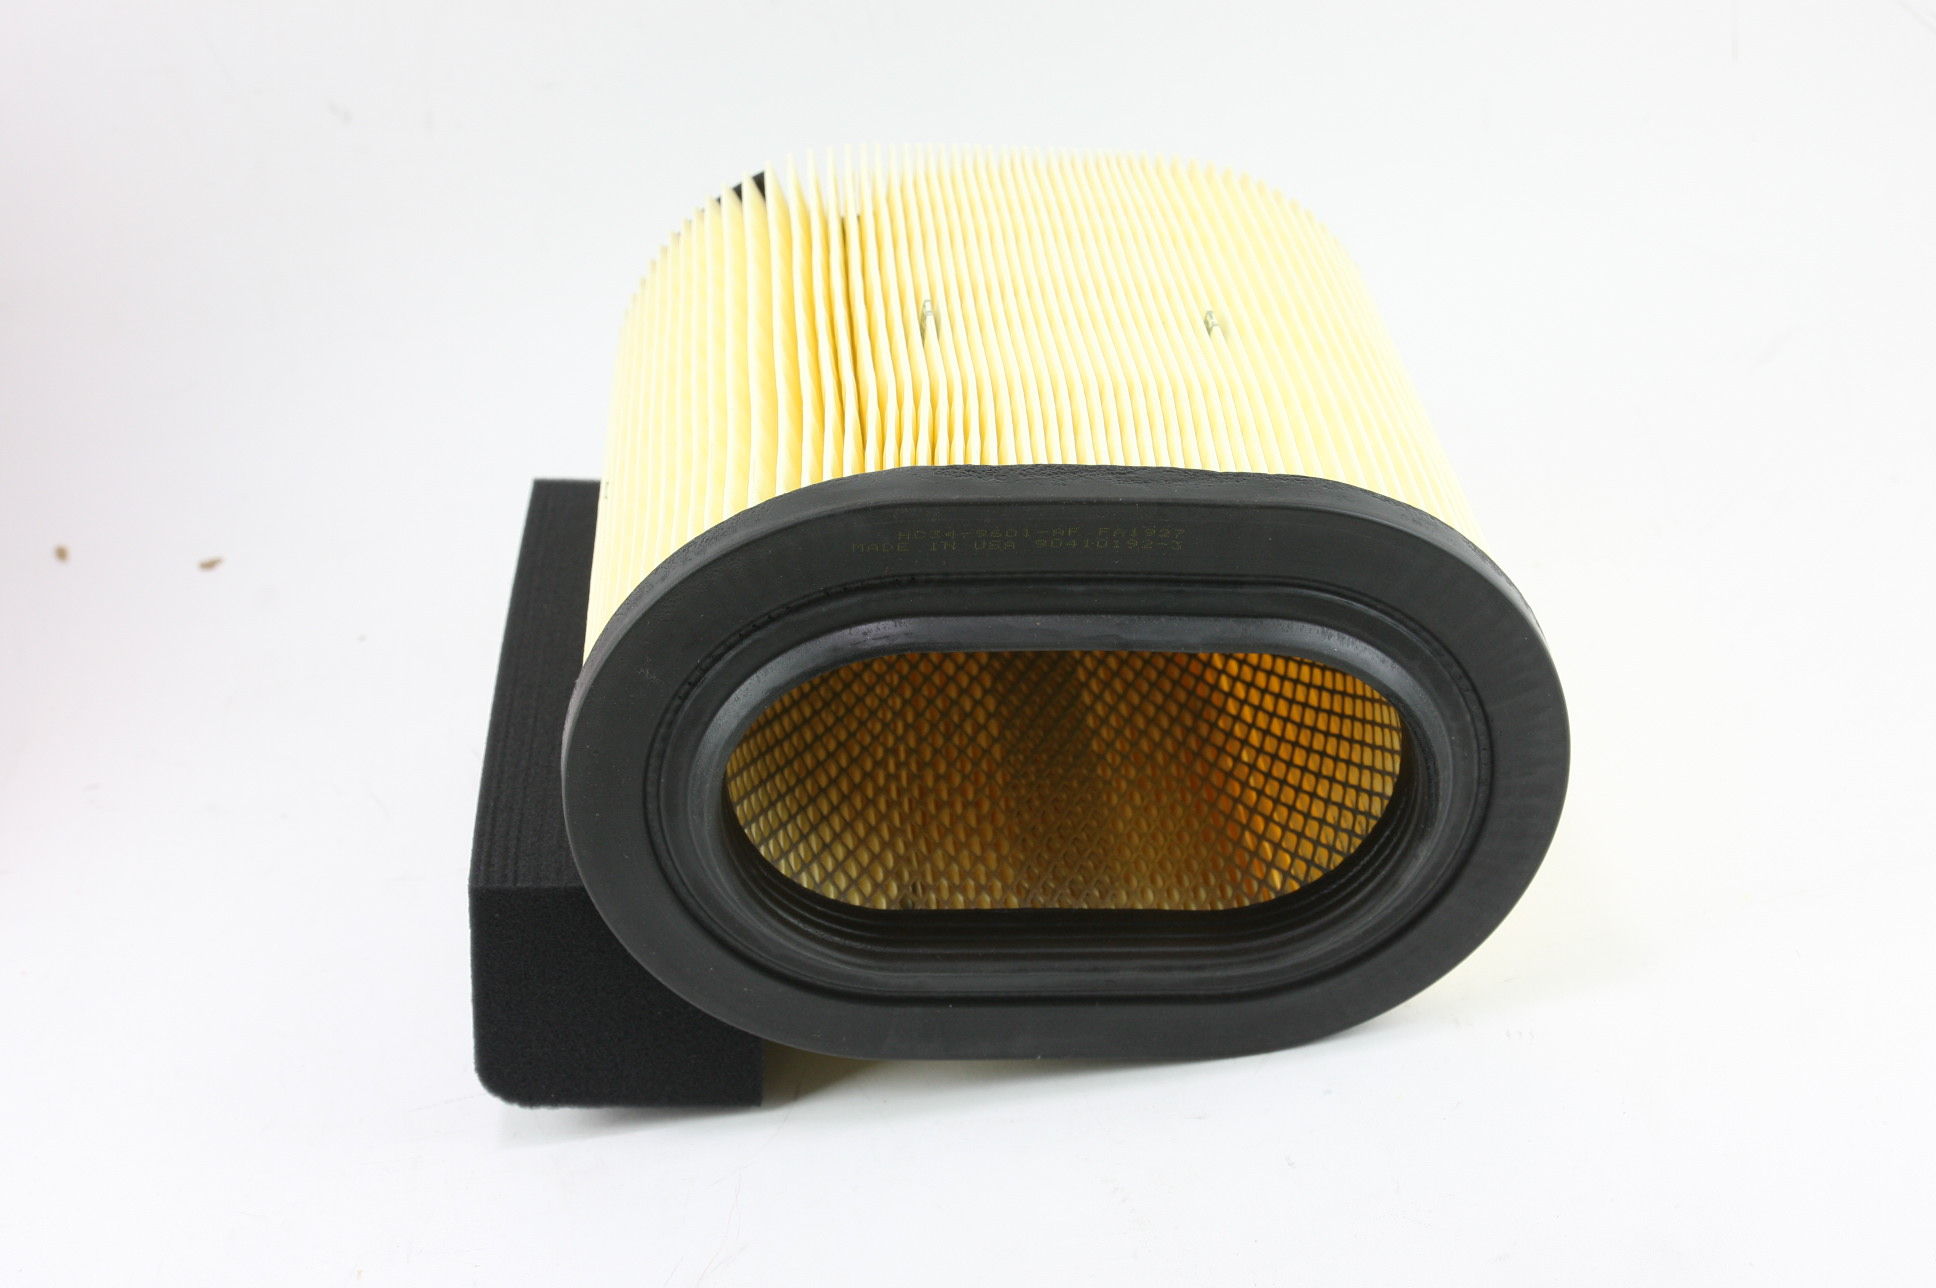 New OEM Motorcraft FA1927 Ford HC3Z9601A Powerstroke Diesel Air Filter Free Ship - image 5